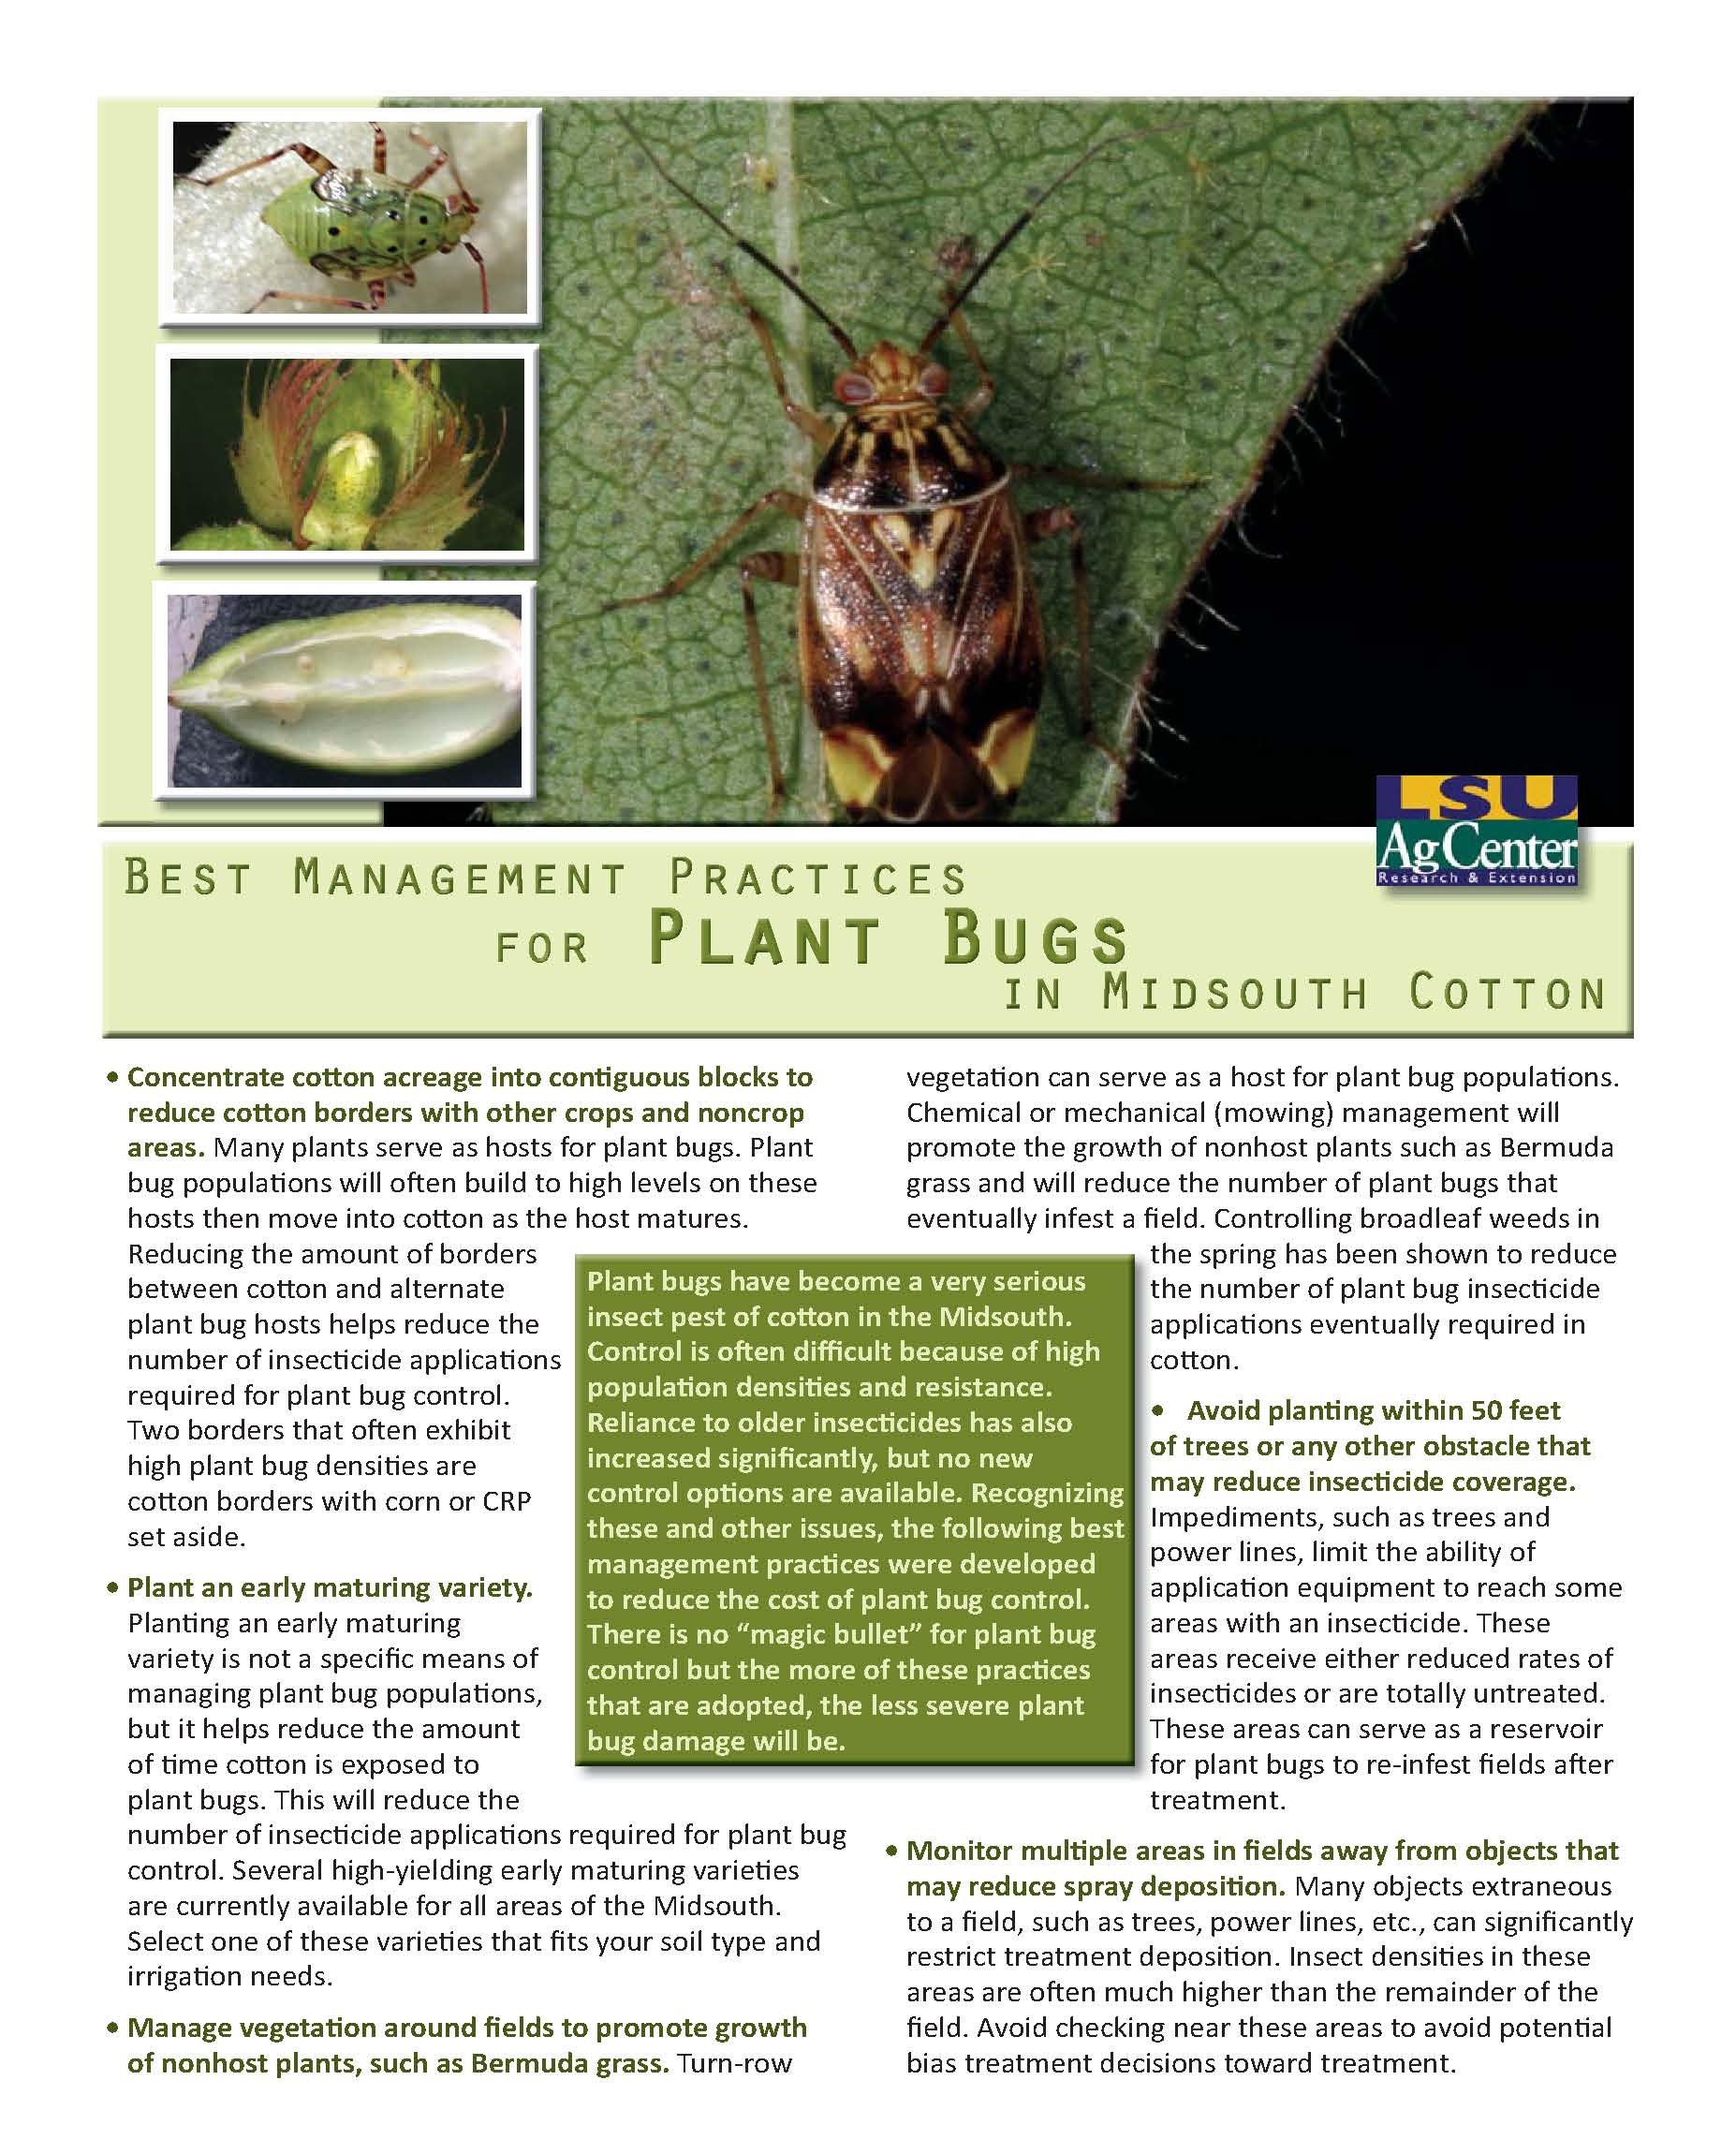 Best Management Practices for Plant Bugs in Midsouth Cotton